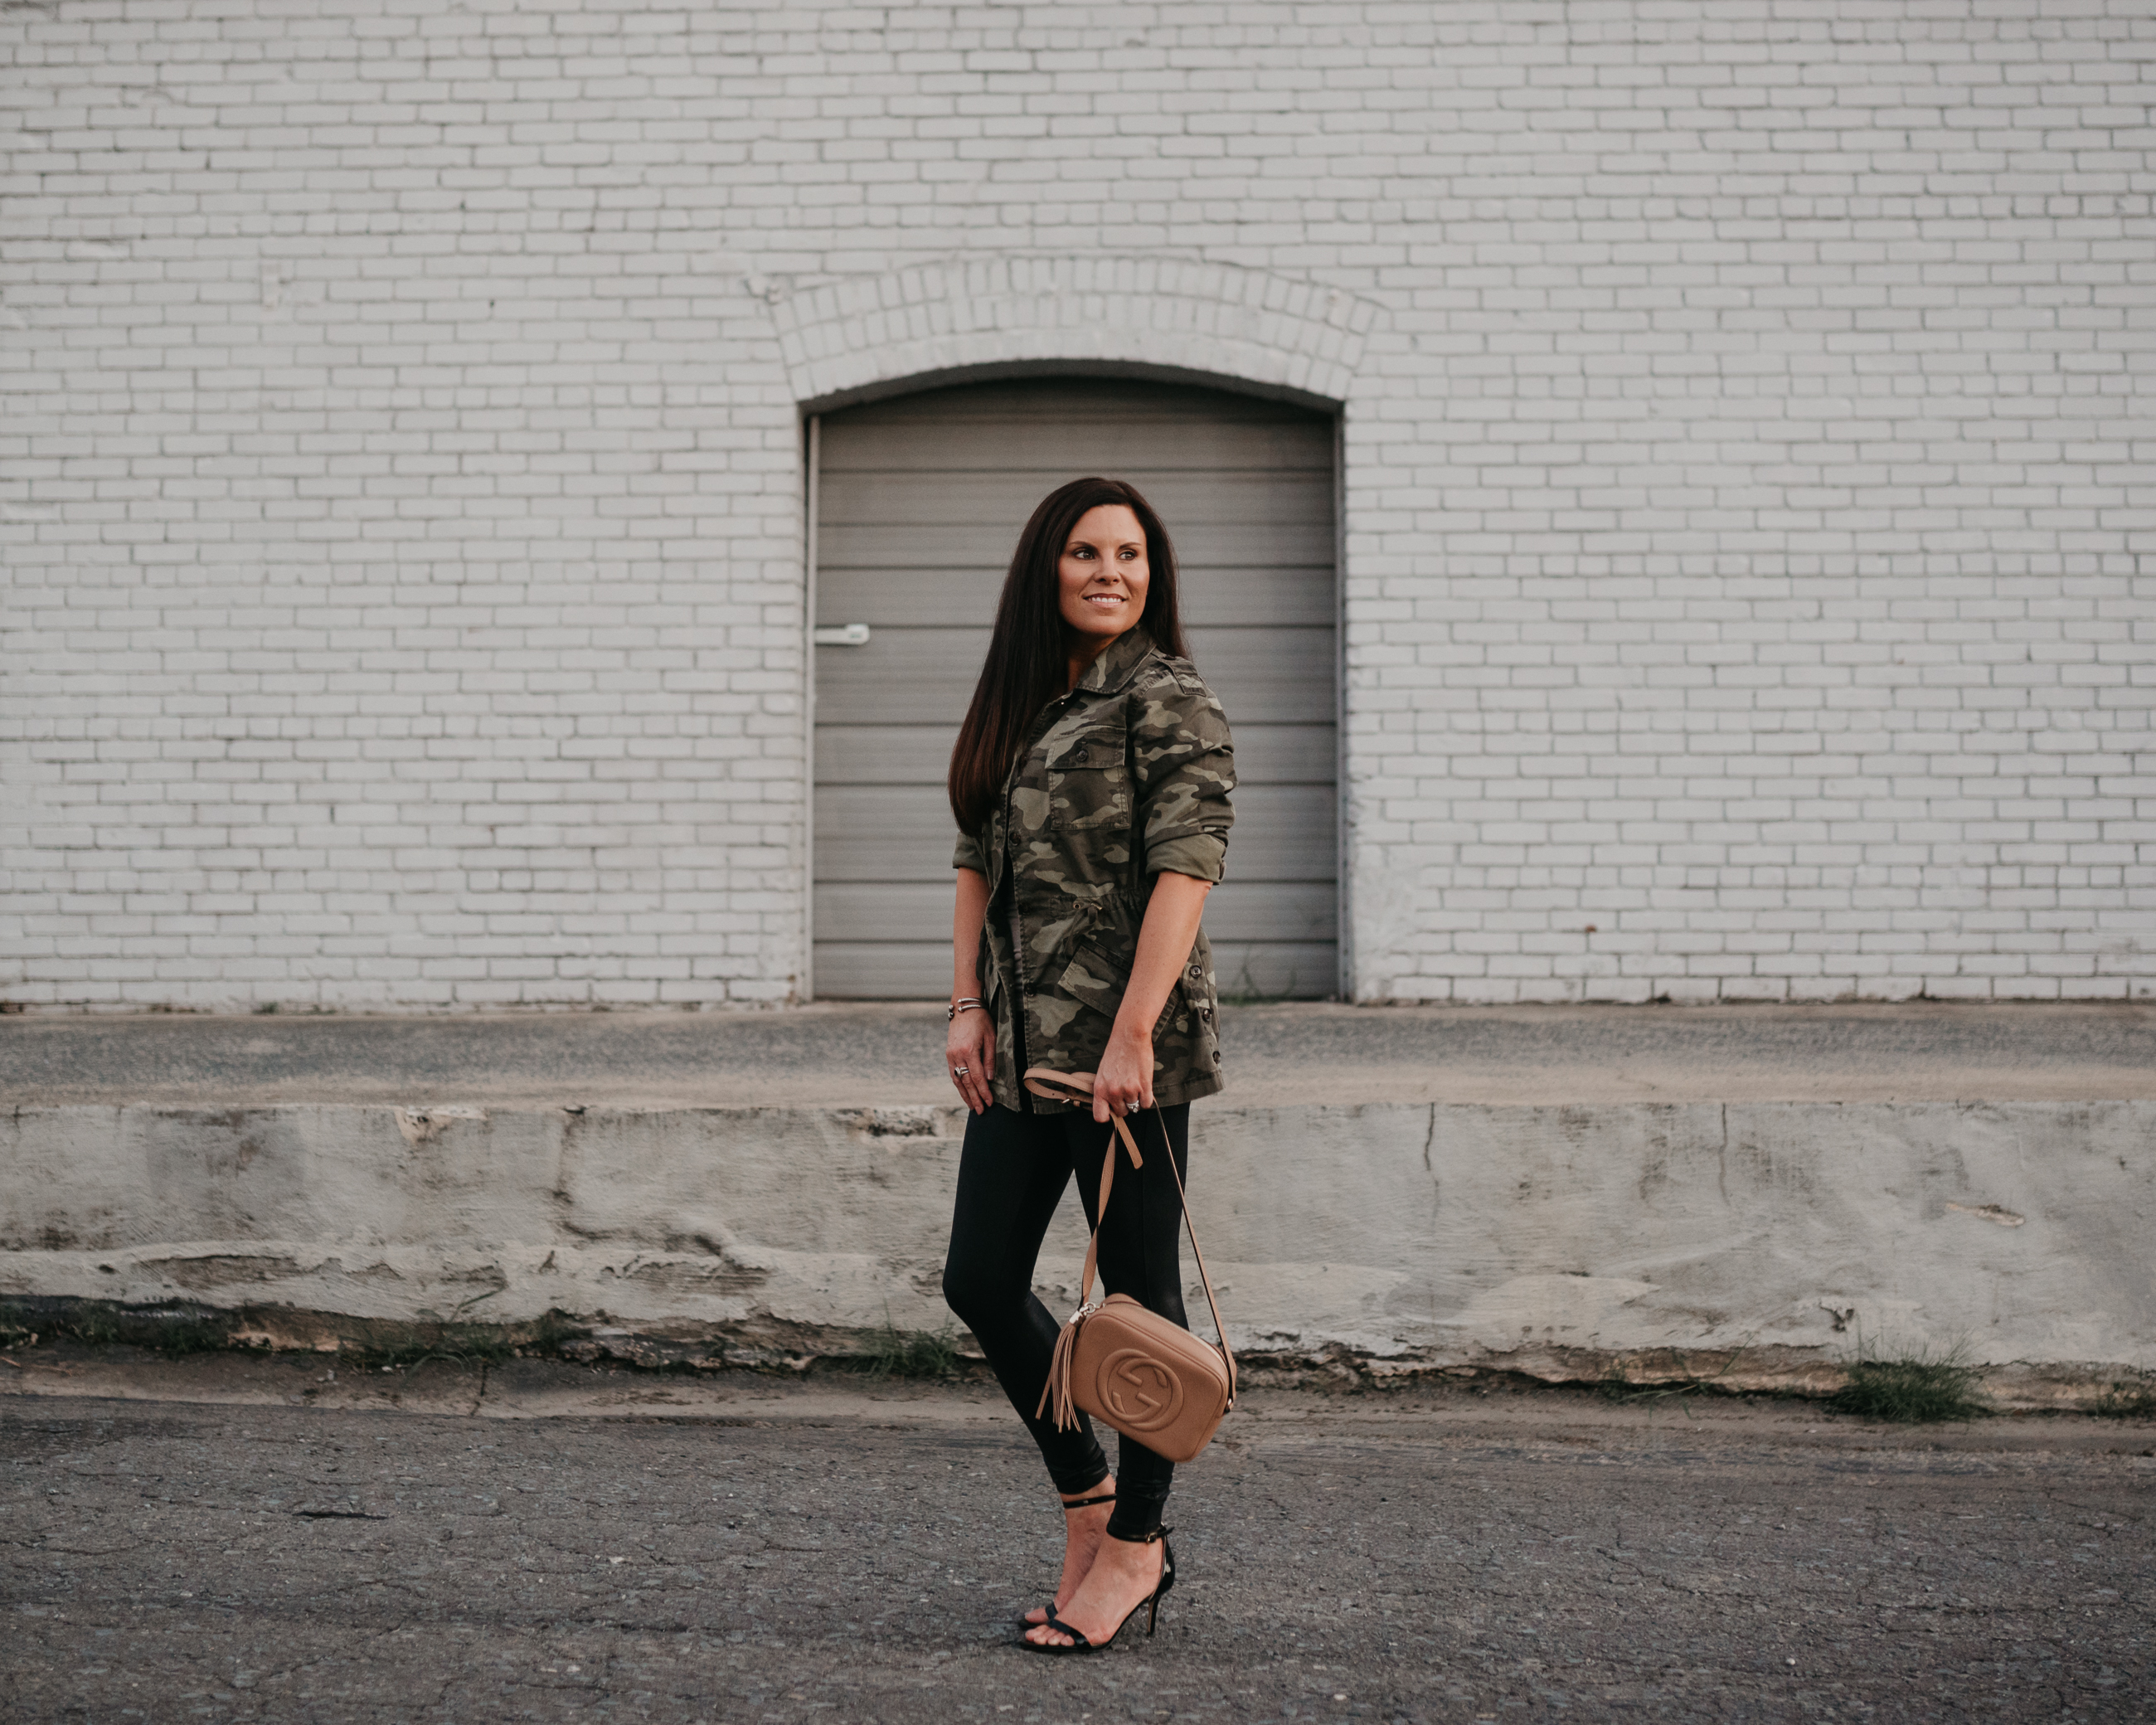 Spanx faux leather leggings, Banana Republic Camo Shirt Jacket, Sam Edelman heels, Gucci Disco Bag